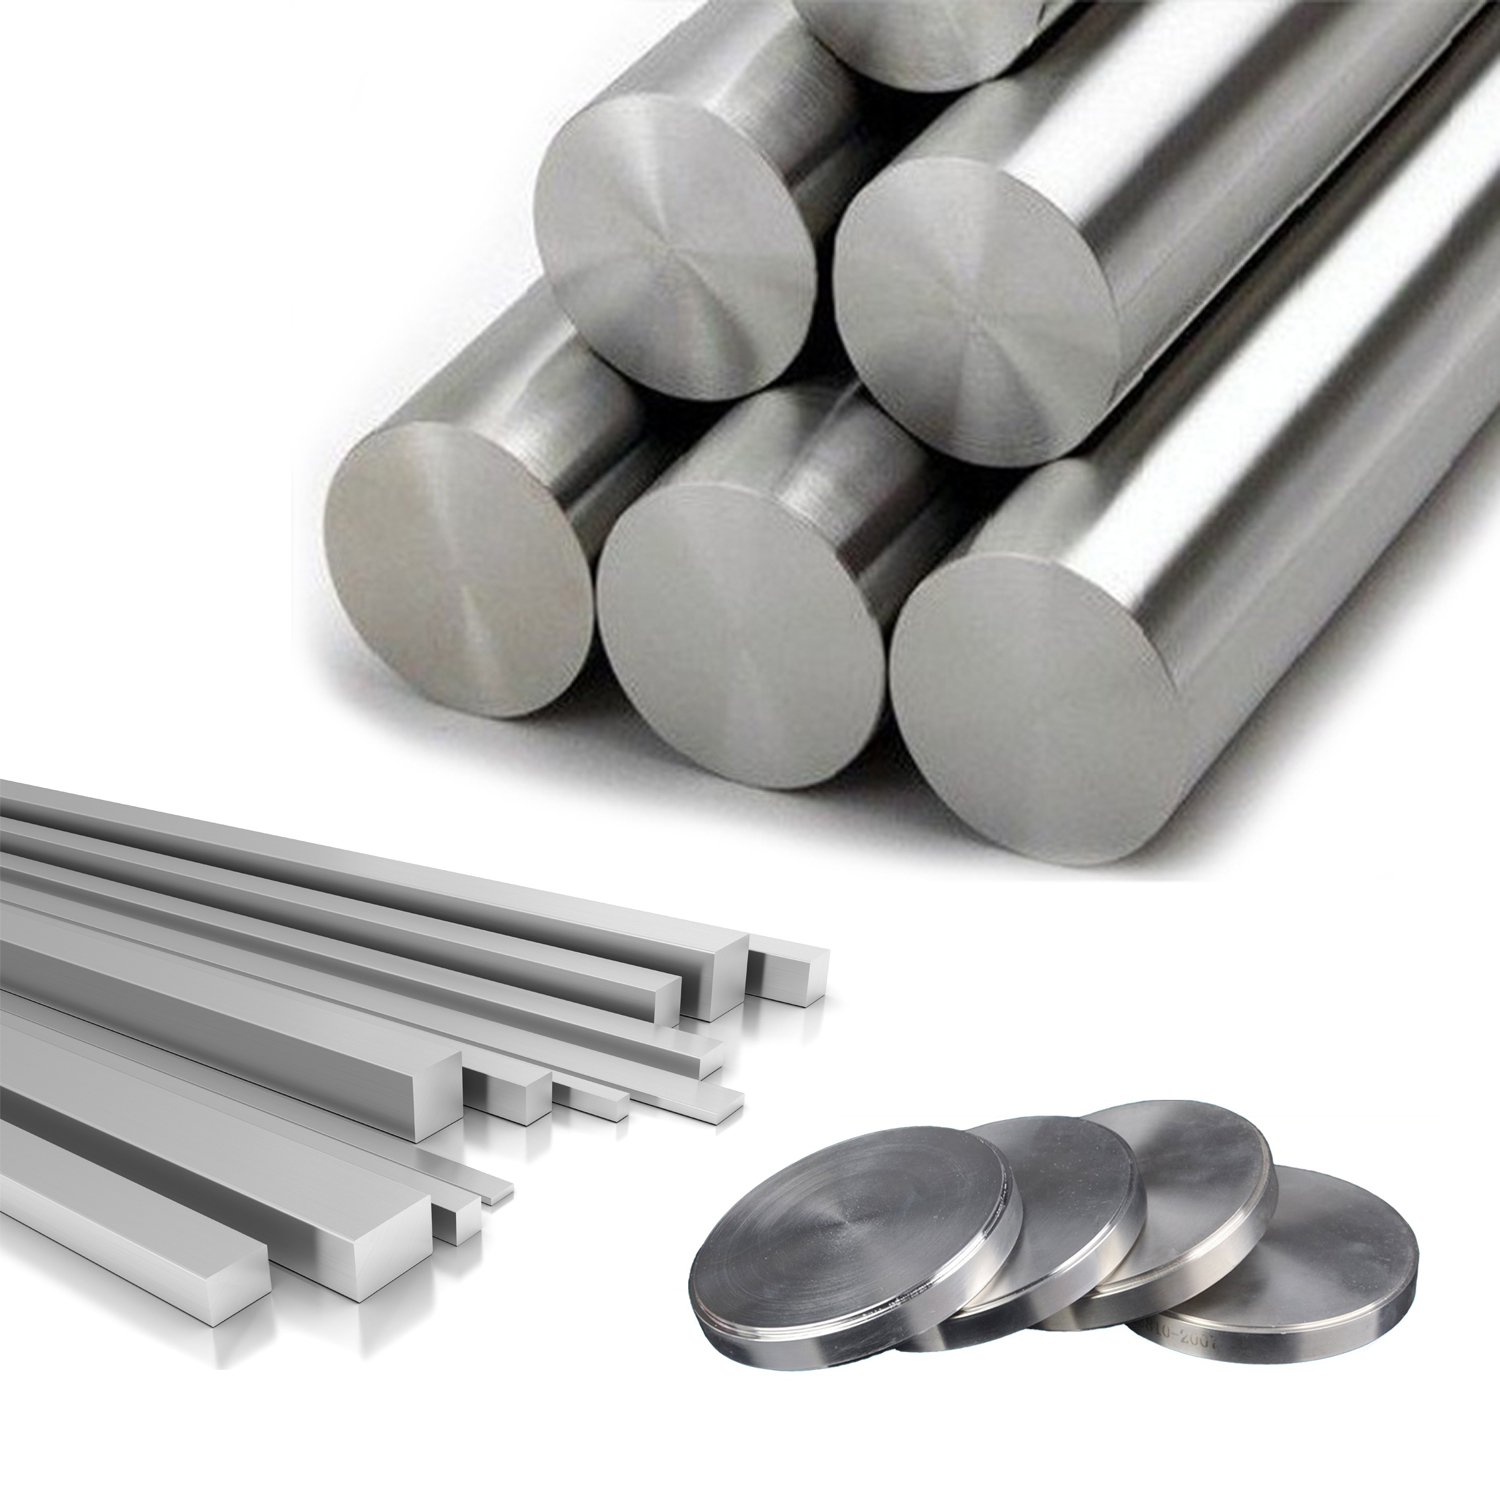 Types of Titanium Alloys